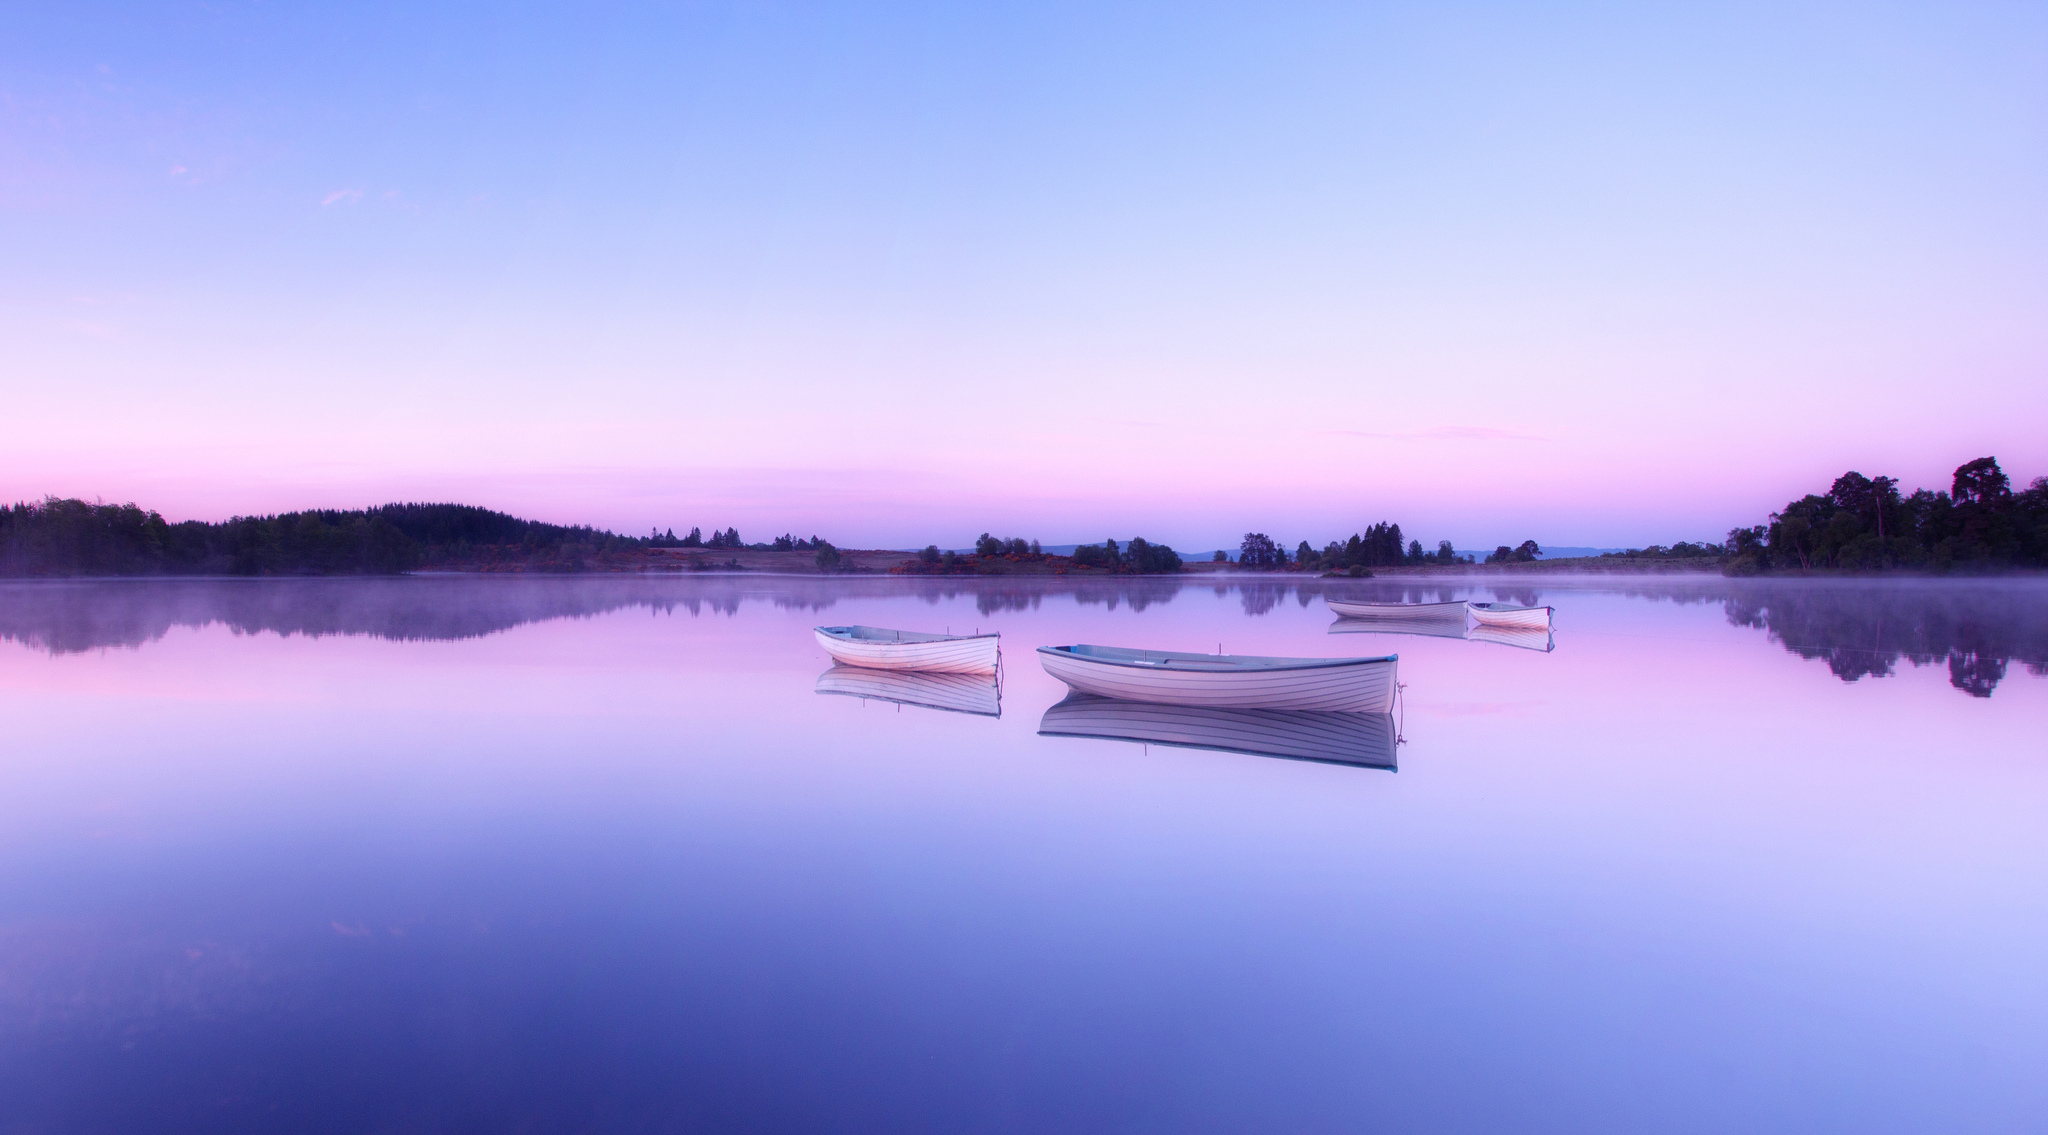 A mirror calm morning on Loch Rusky, Trossachs, Scotland with the wee boats from the local angling club sitting on the glass surface of the loch. Flickr - john mcsporran.